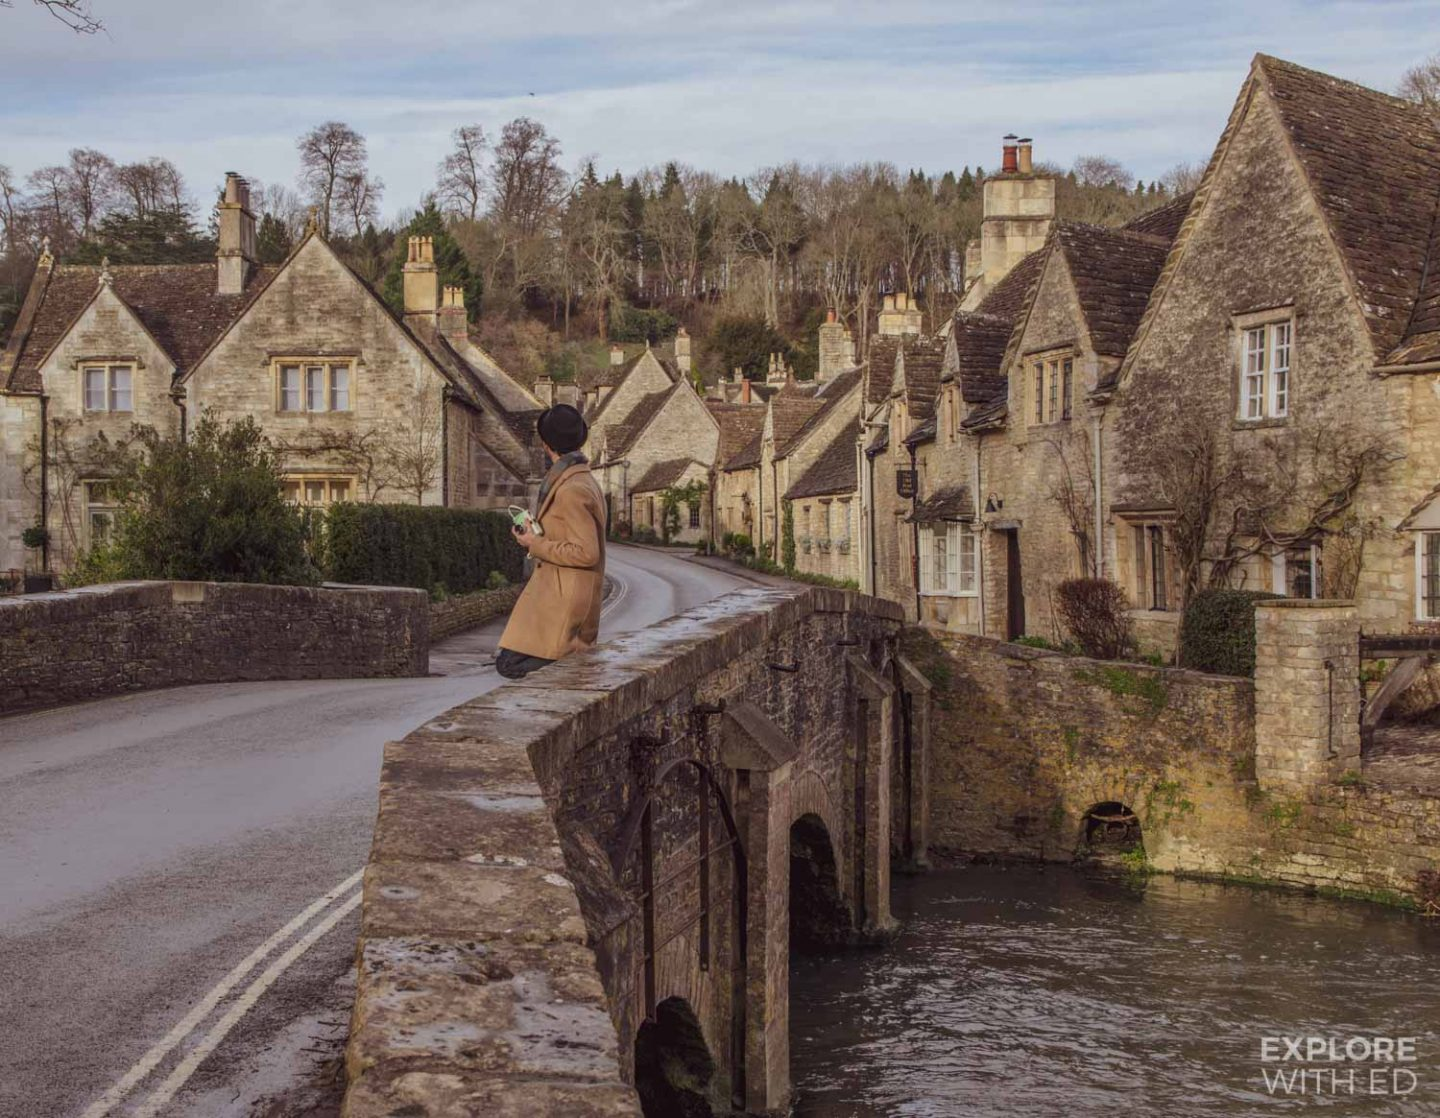 Travel photography tips - The river bridge in Castle Combe (England) is a popular photo spot